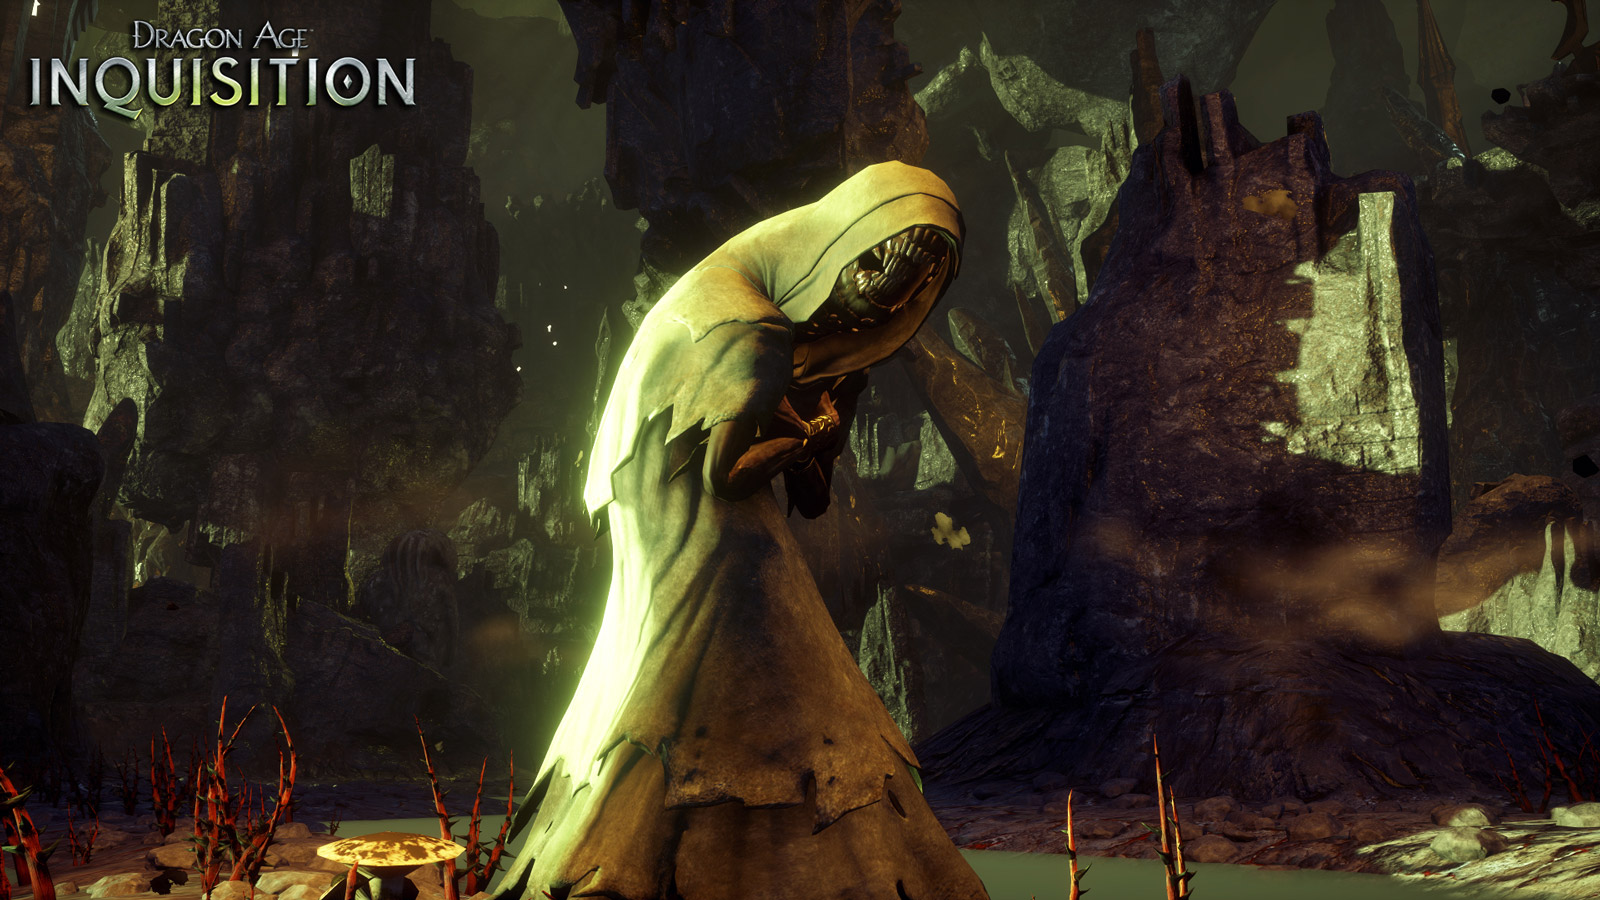 Free Dragon Age: Inquisition Wallpaper in 1600x900